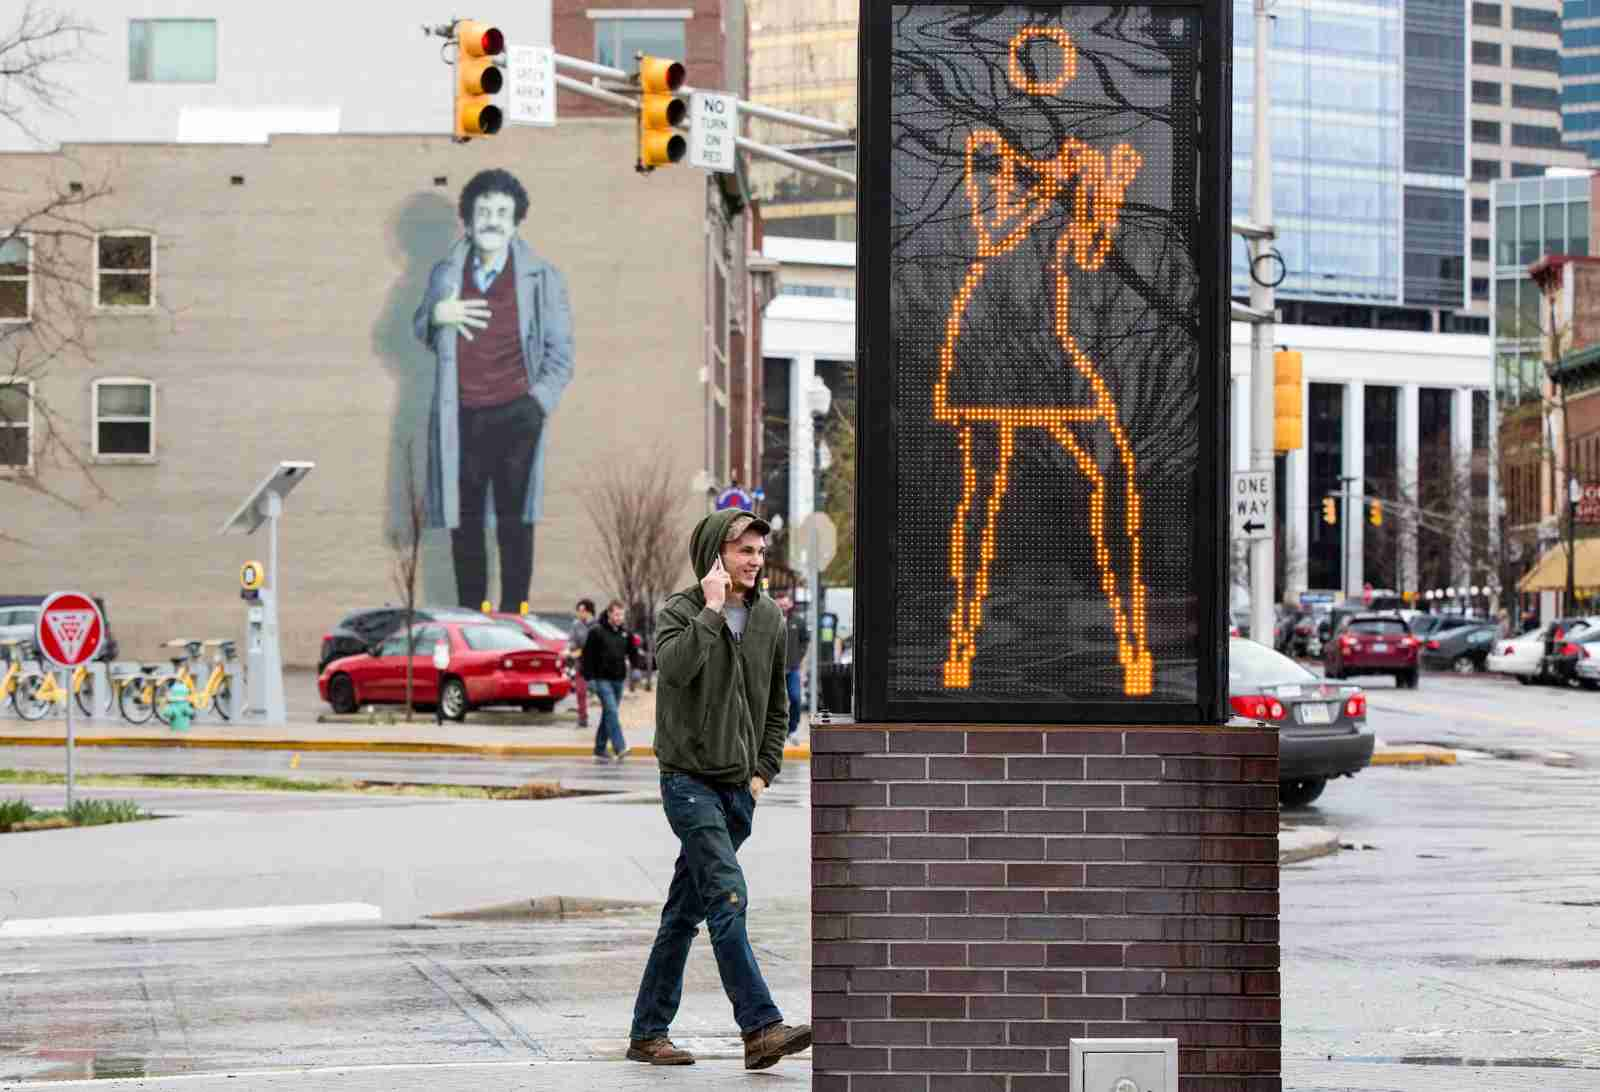 """In downtown Indianapolis, a Kurt Vonnegut mural sits behind """"Ann Dancing,"""" a LED light sculpture created in 2007 by Julian Opie. (Photo By Al Drago/CQ Roll Call)"""